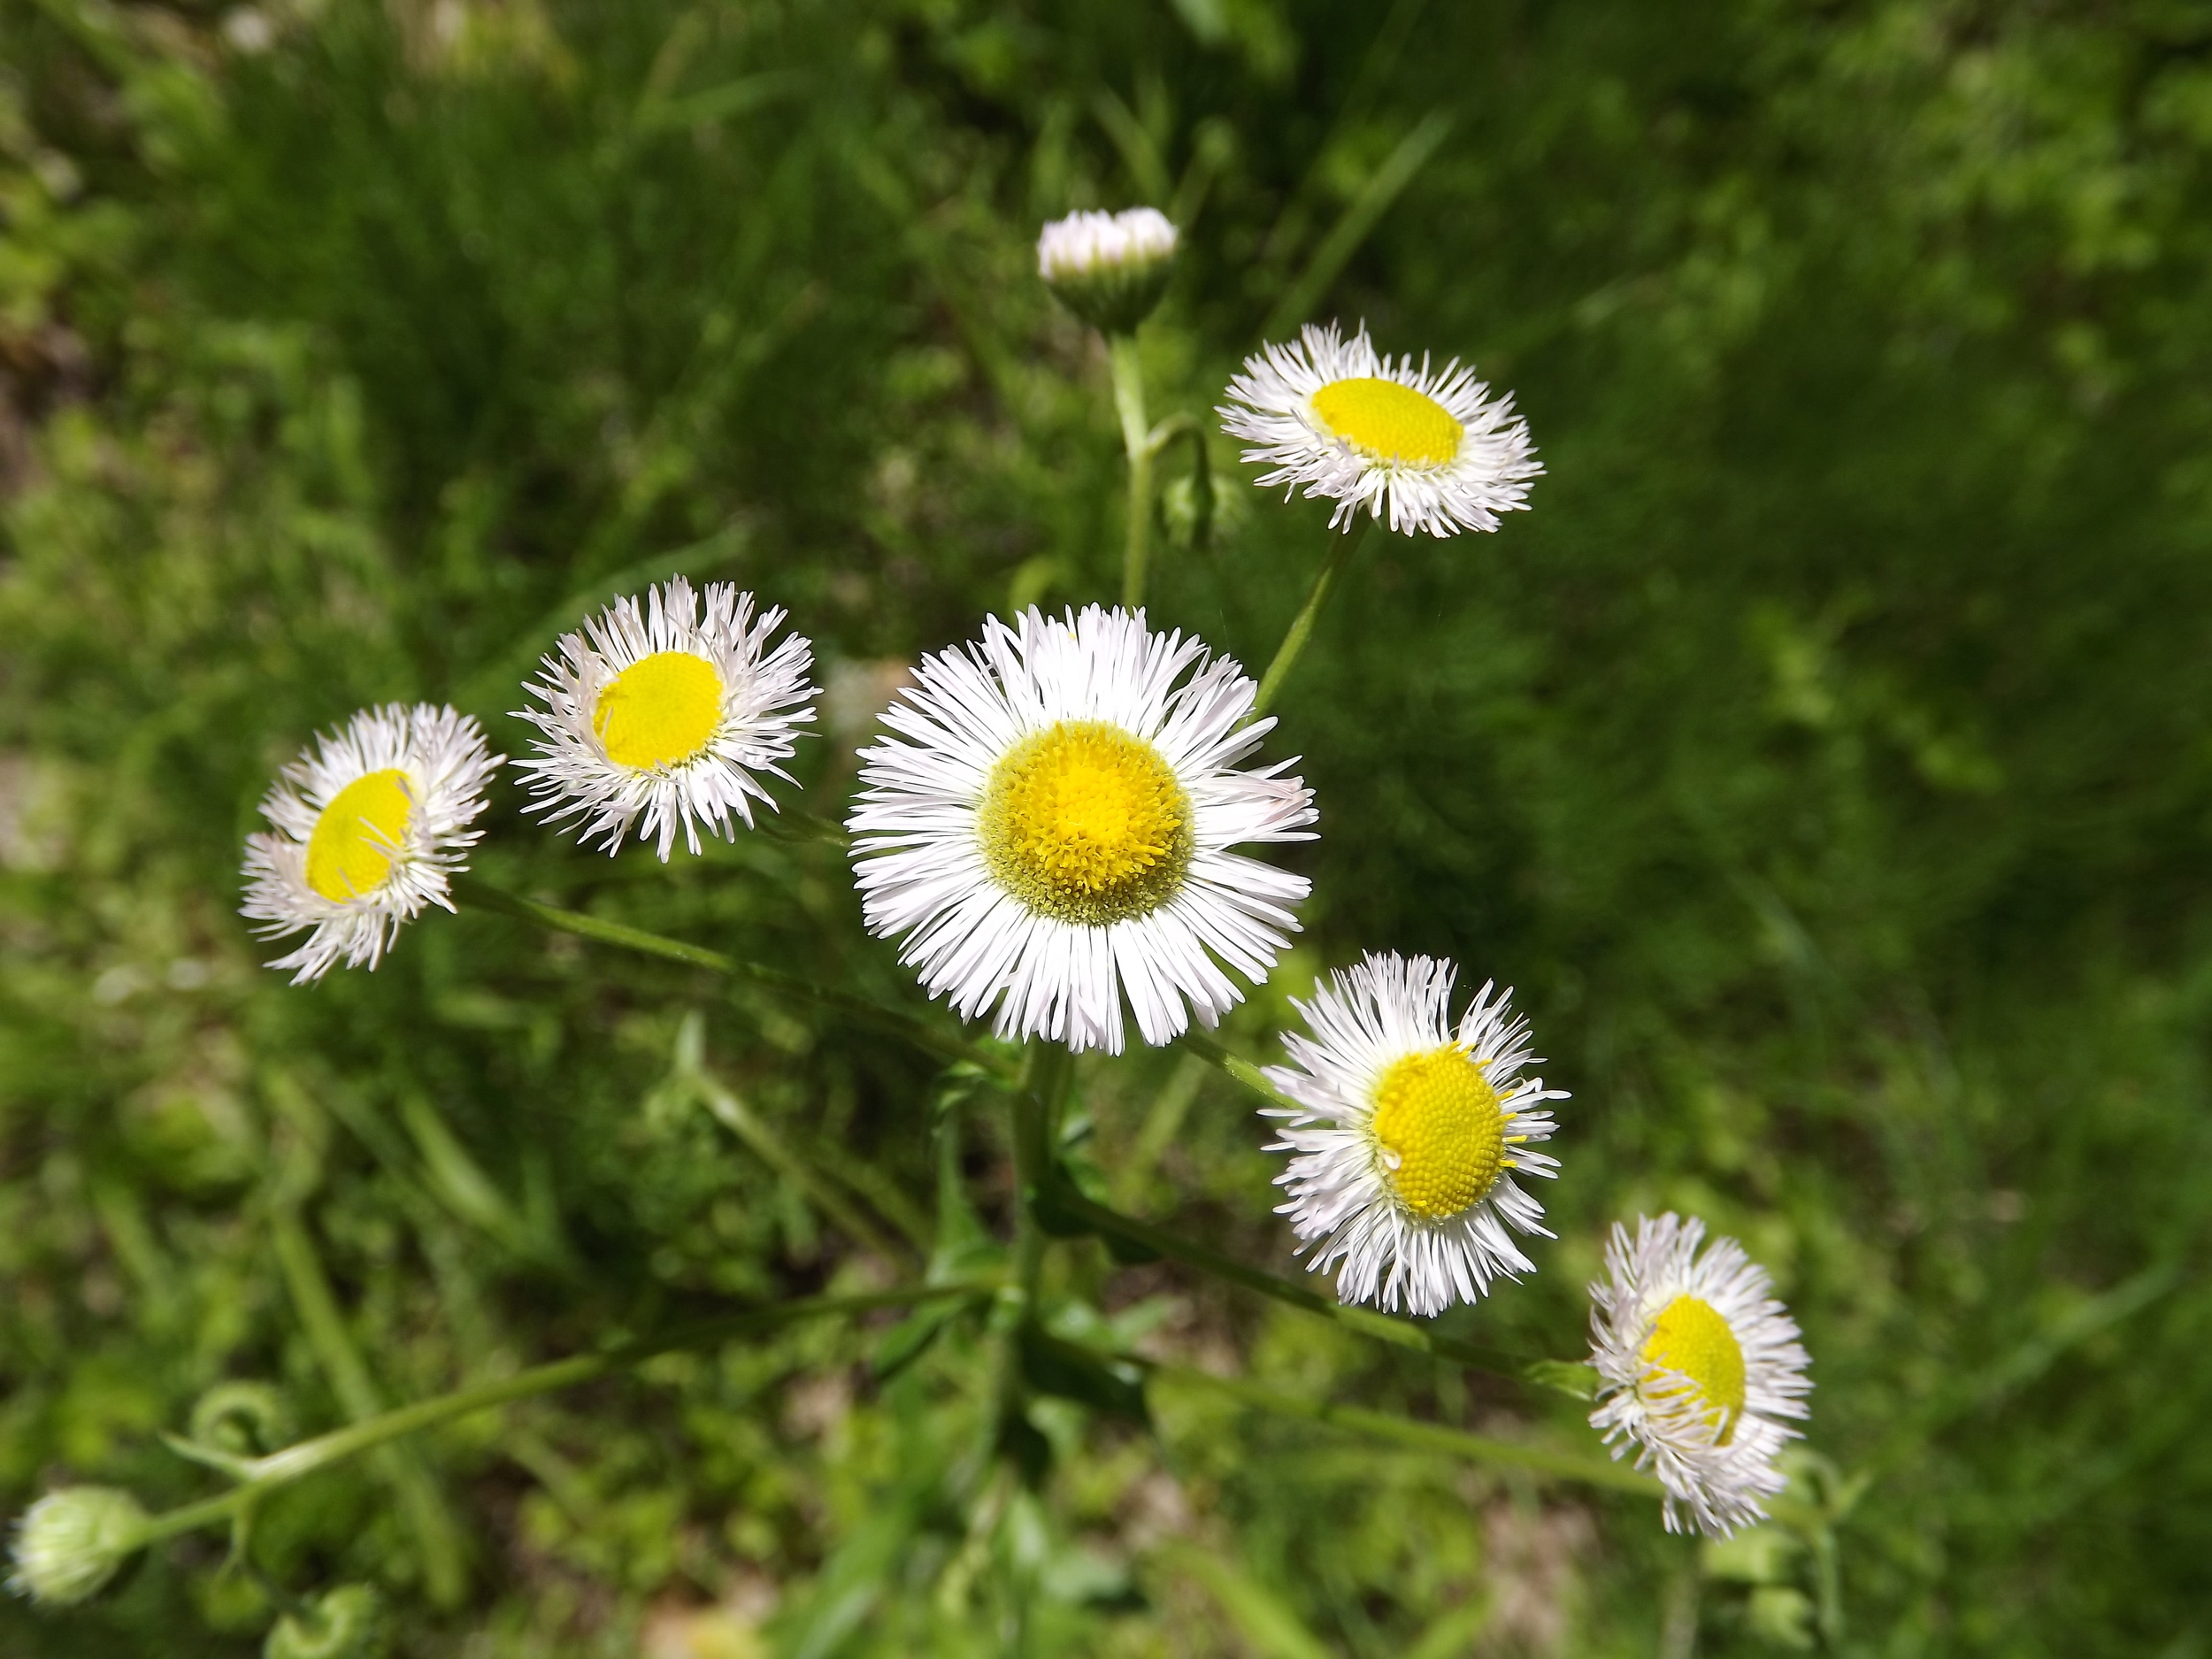 Philadelphia Fleabane ( Erigeron philadelphicus ) - Also known as Common Fleabane, Philadelphia Fleabane is just starting to show up in our woods. The daisy-like flowers have very thin petals that can be white or purple or a combination of both and are very pretty.